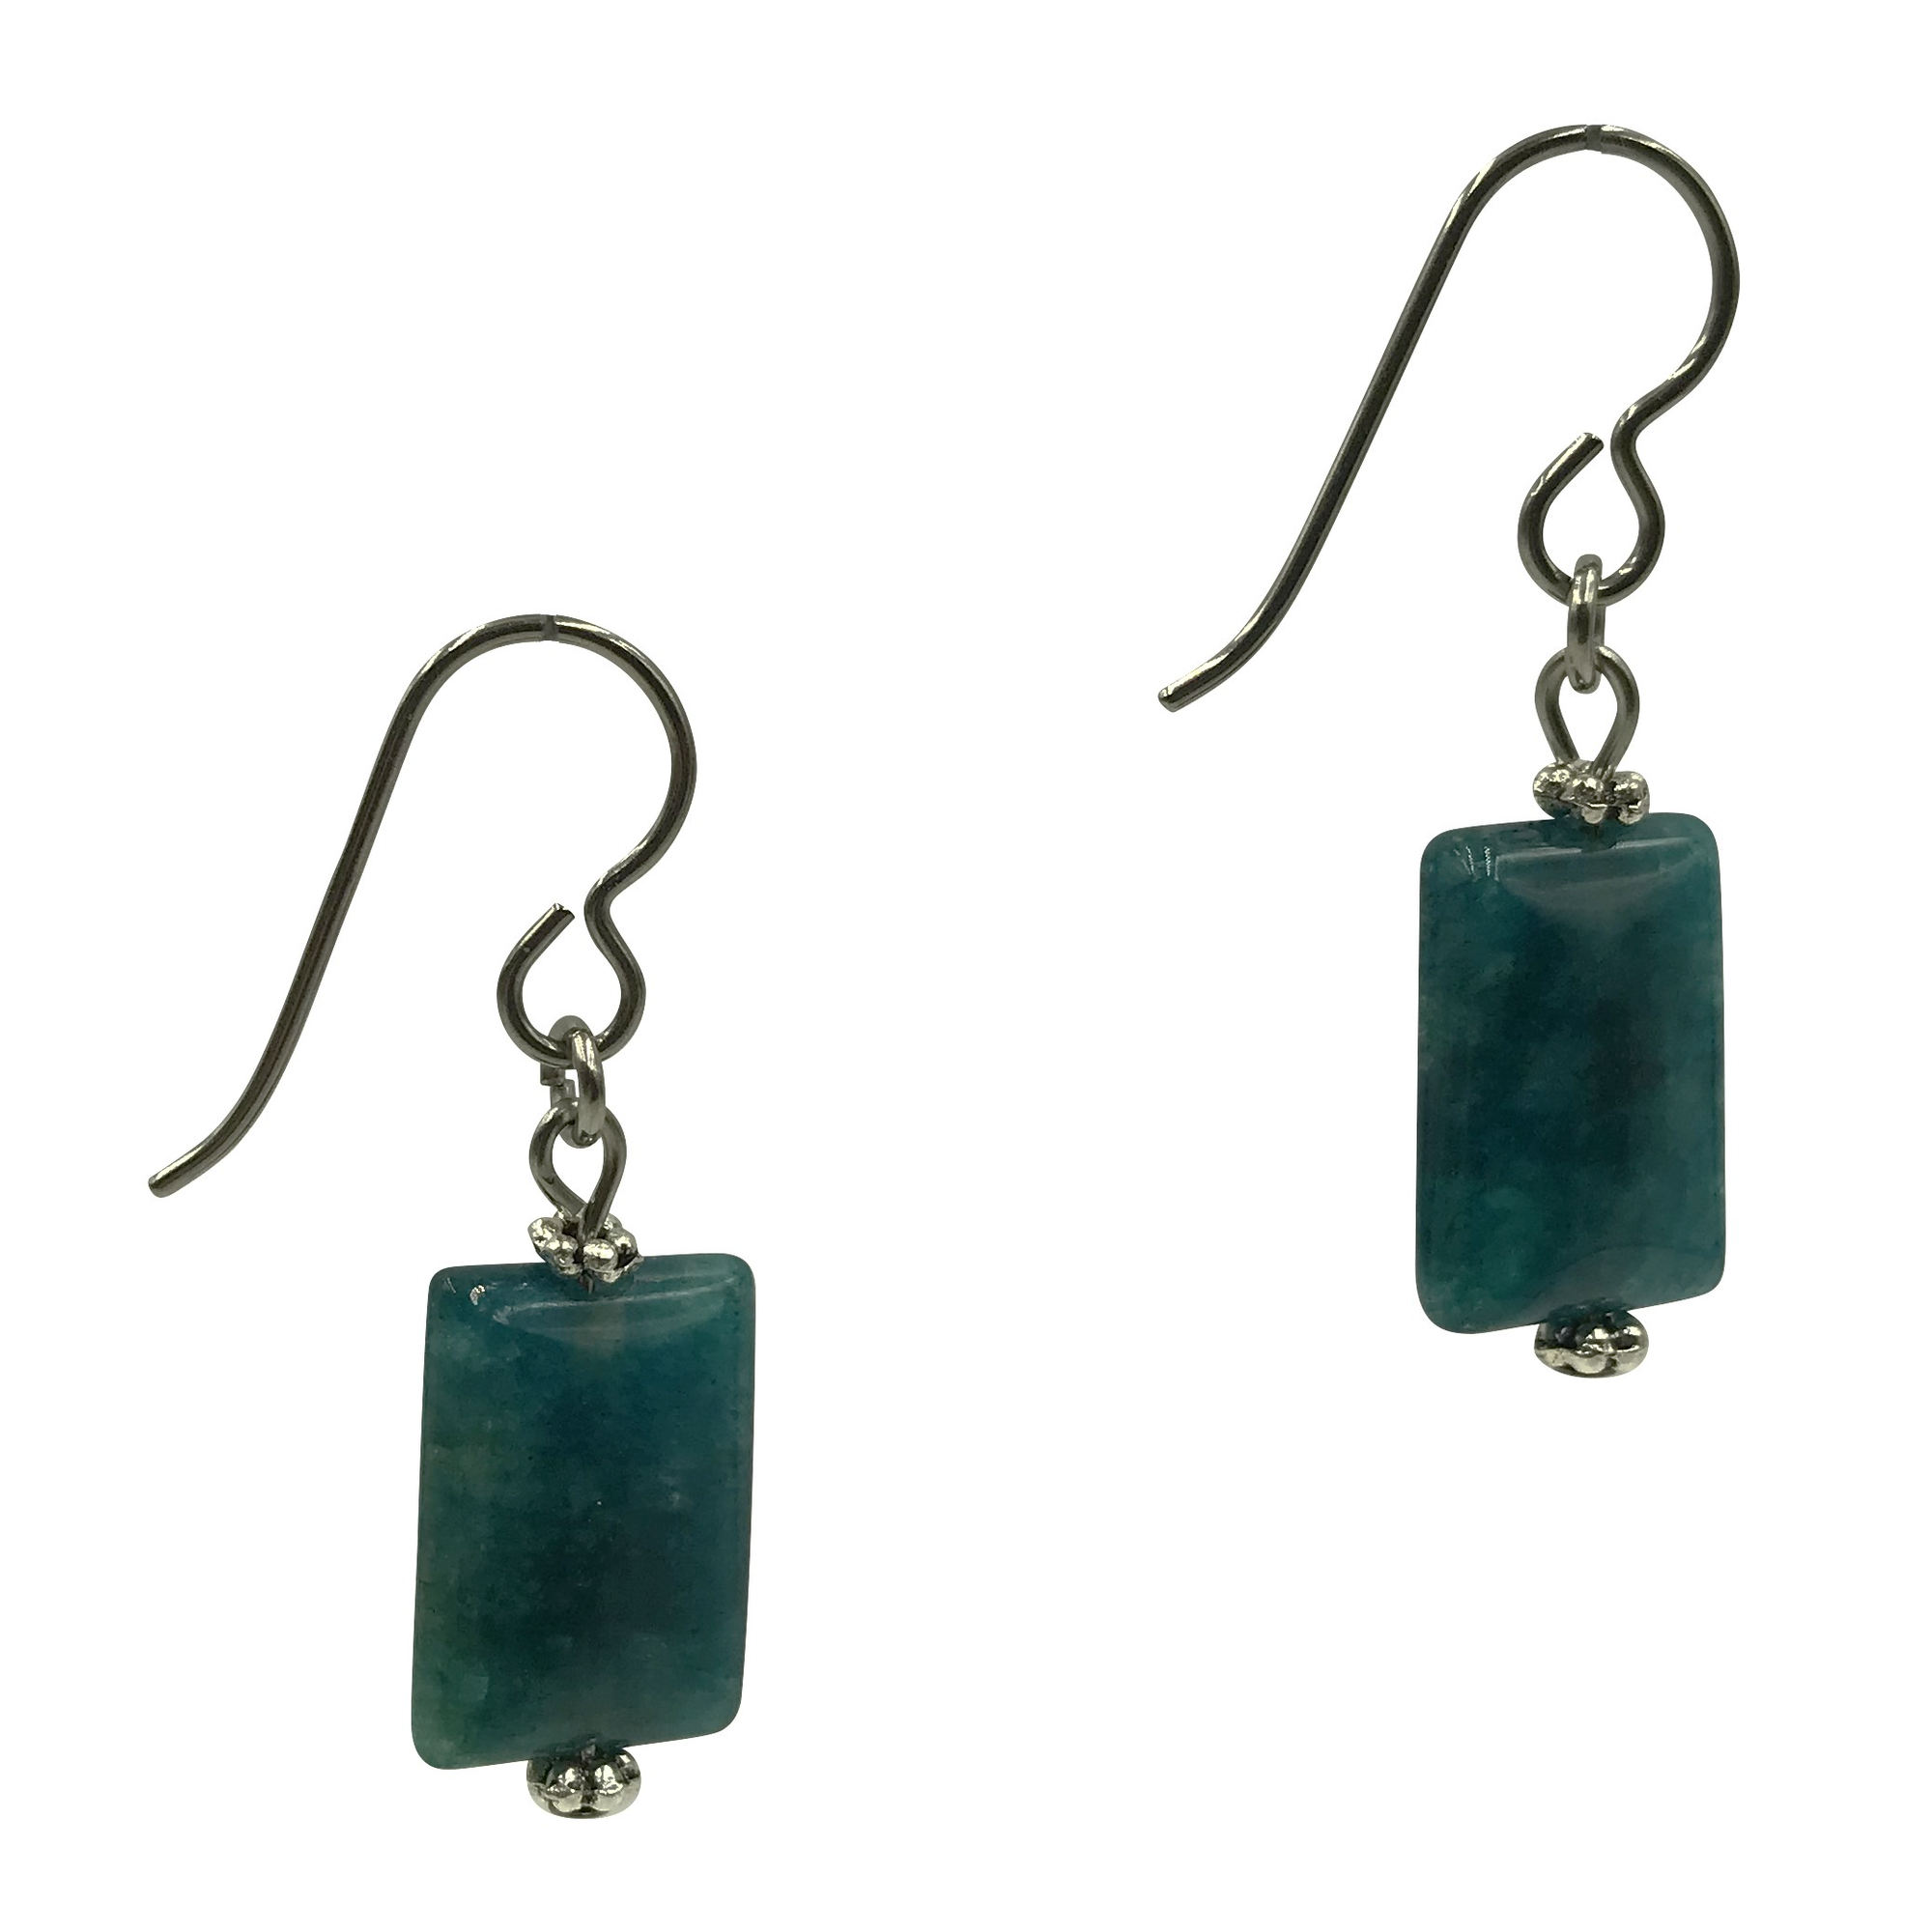 Teal Apatite Drop Earrings for Sensitive Ears-Earrings- Creative Jewelry by Marcia